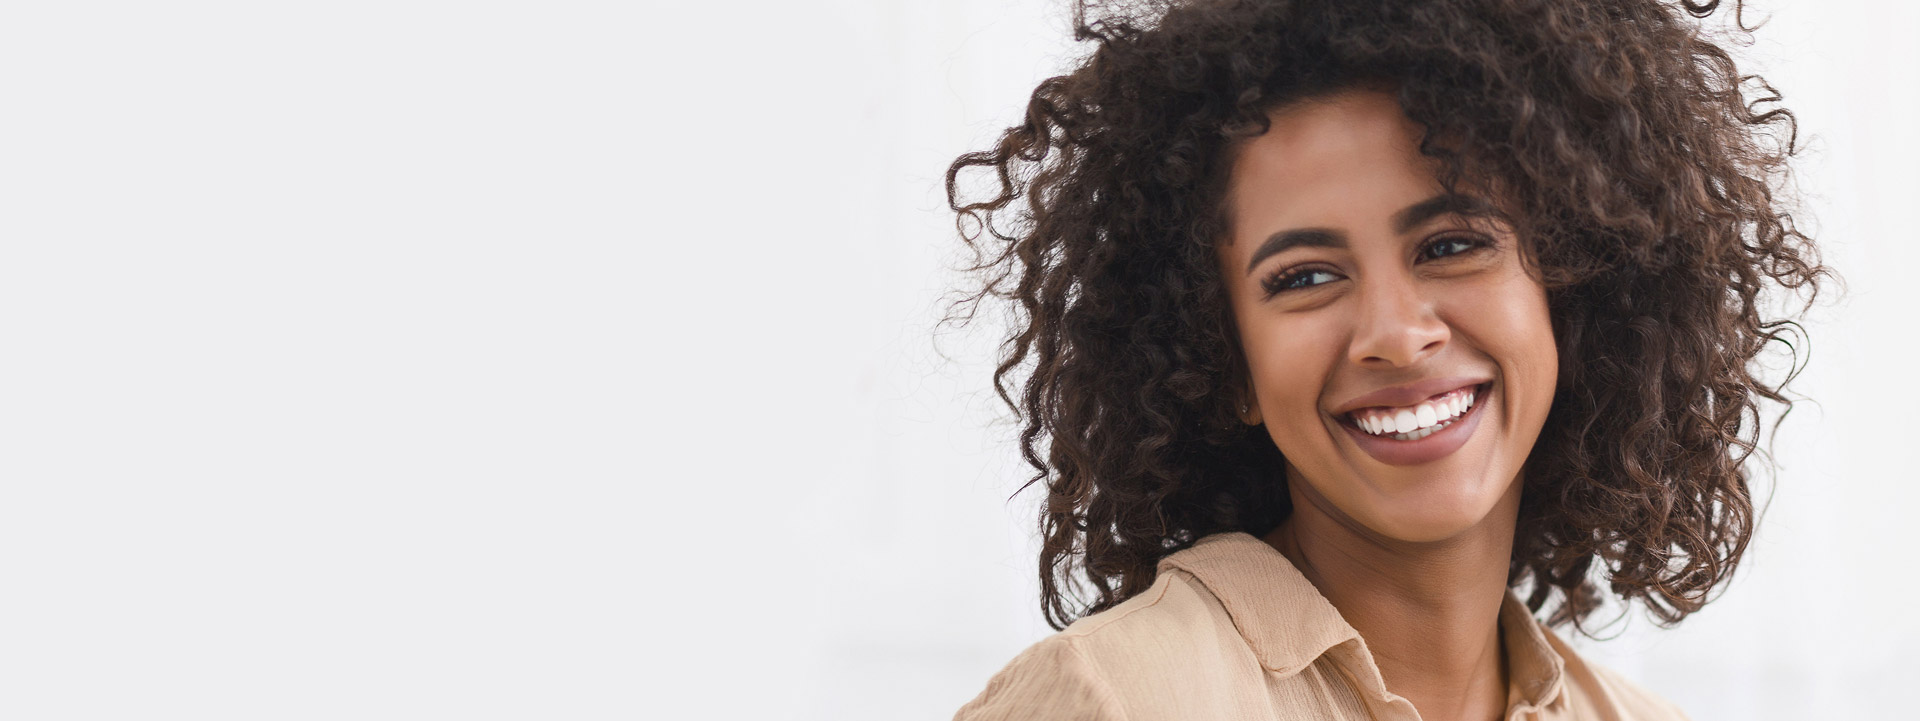 Improve your smile in just one appointment